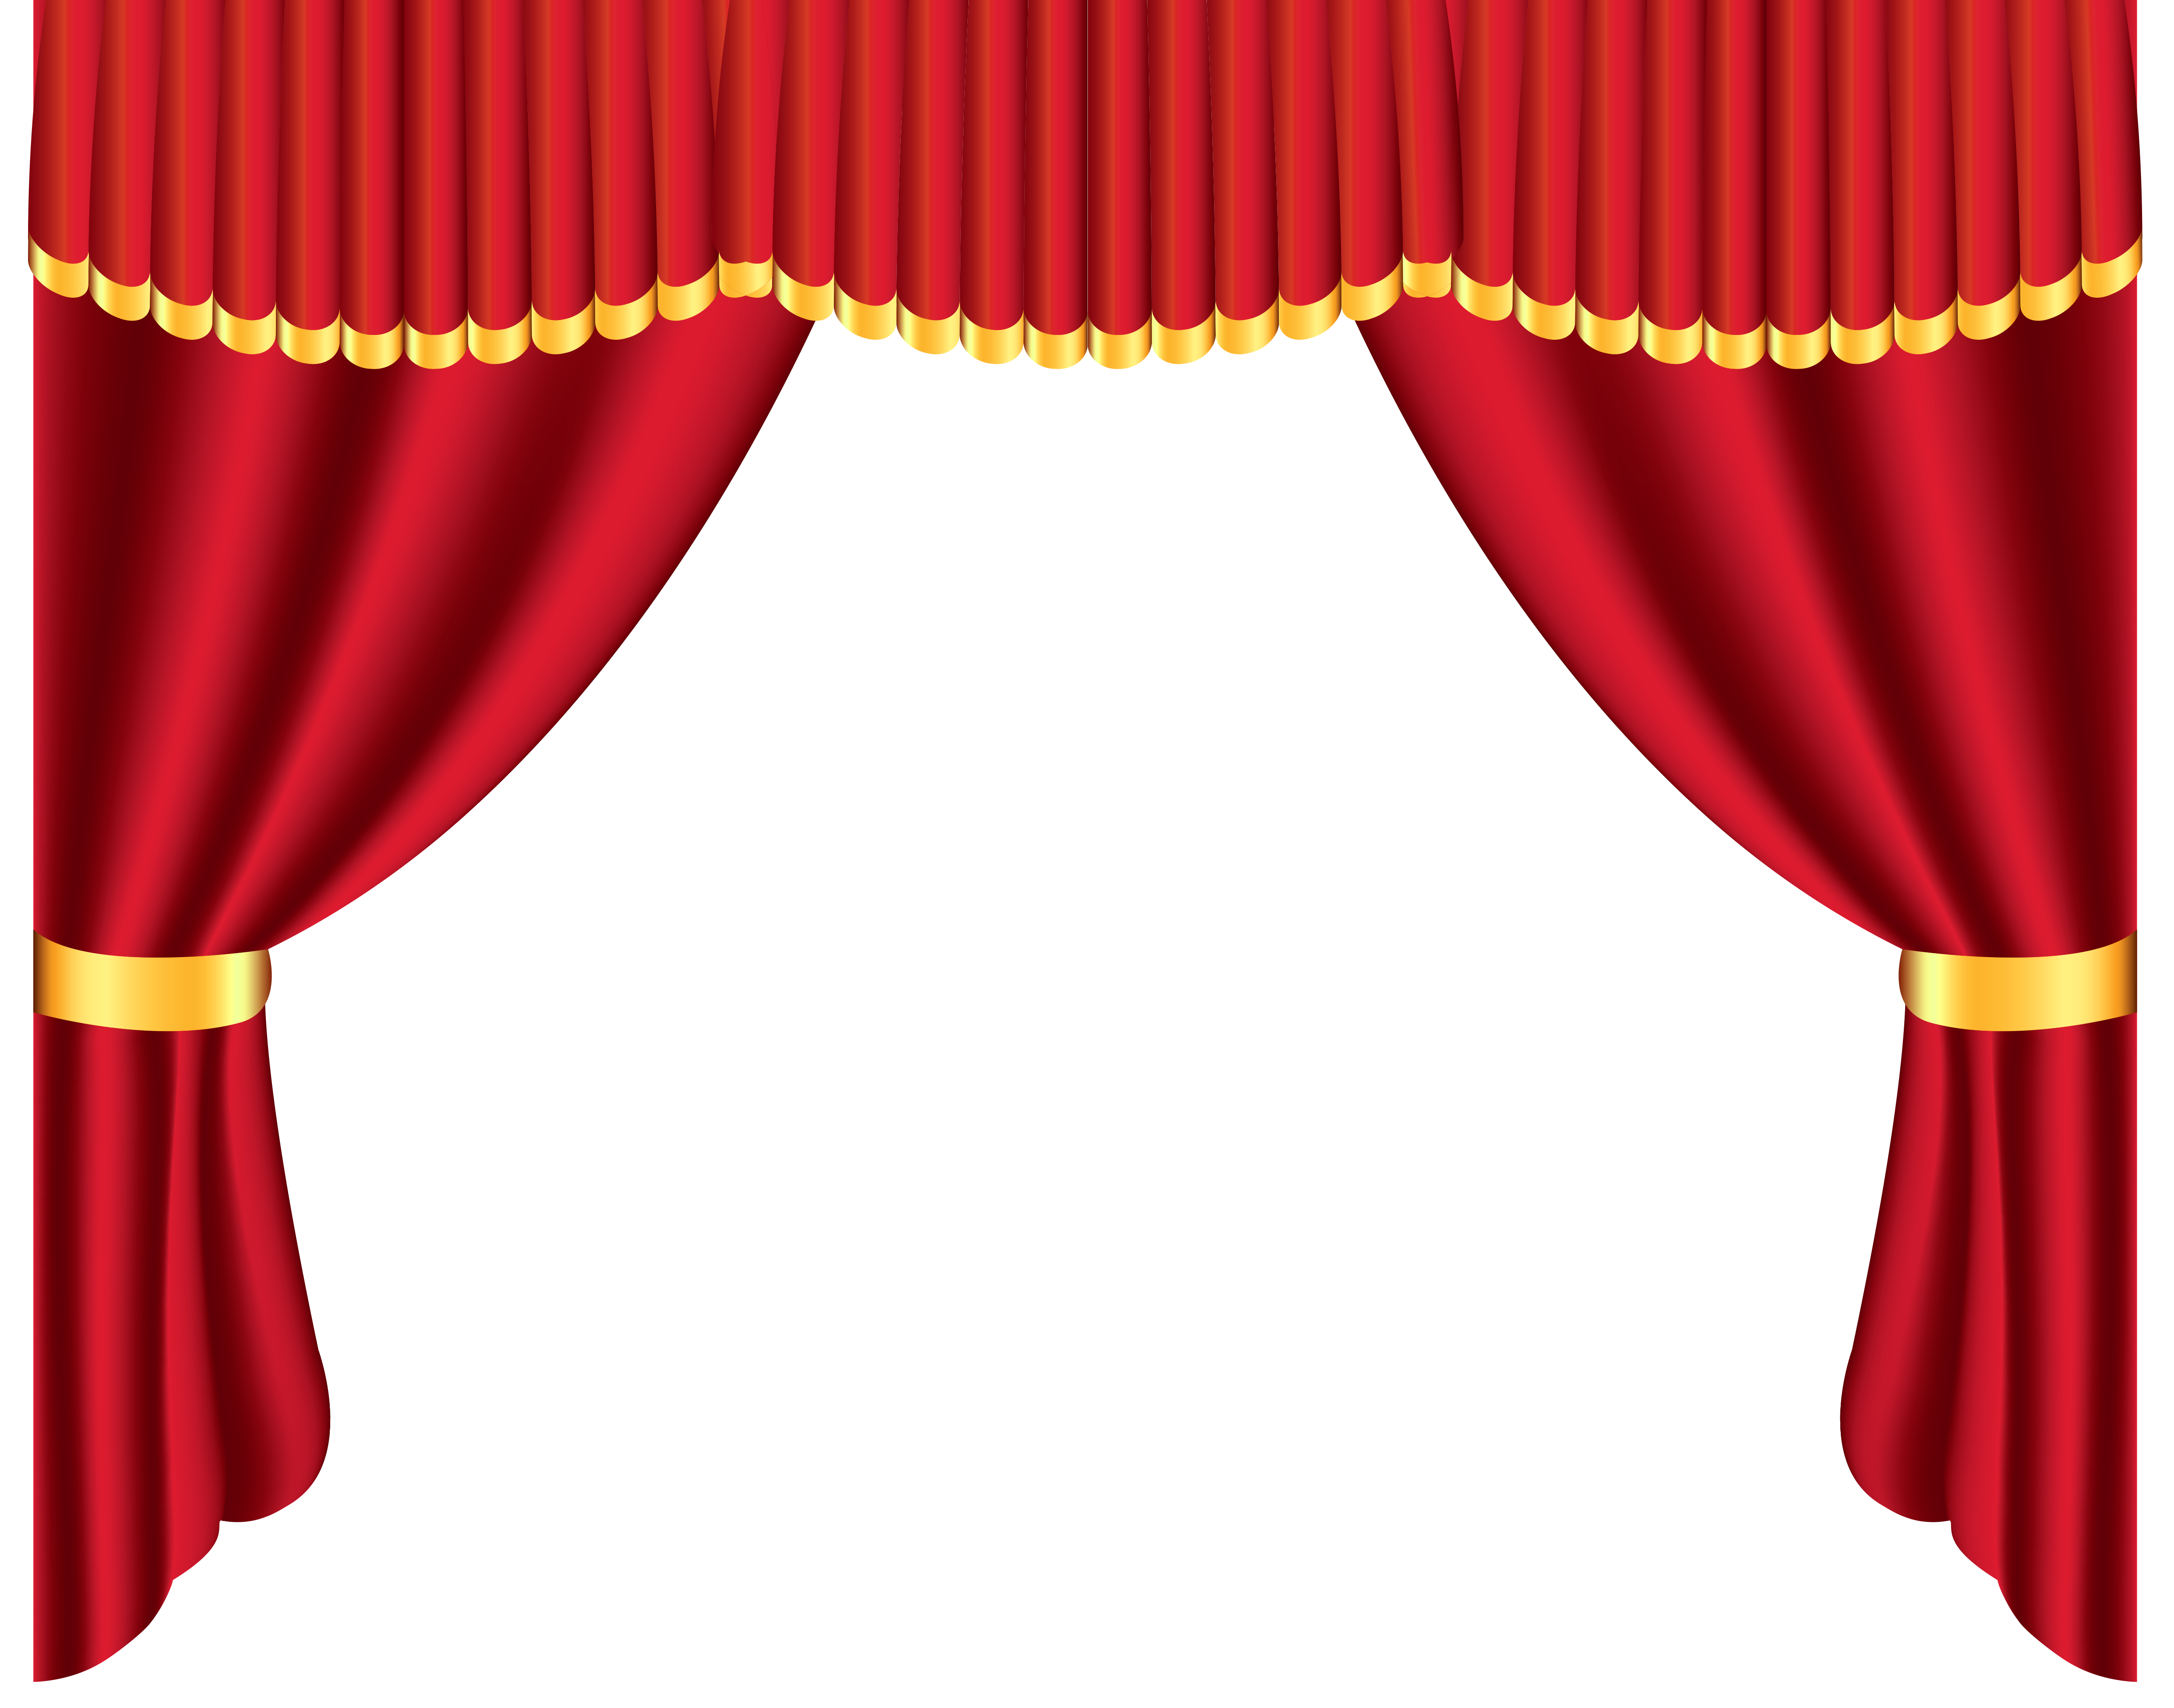 Transparent red curtain png. Curtains clipart